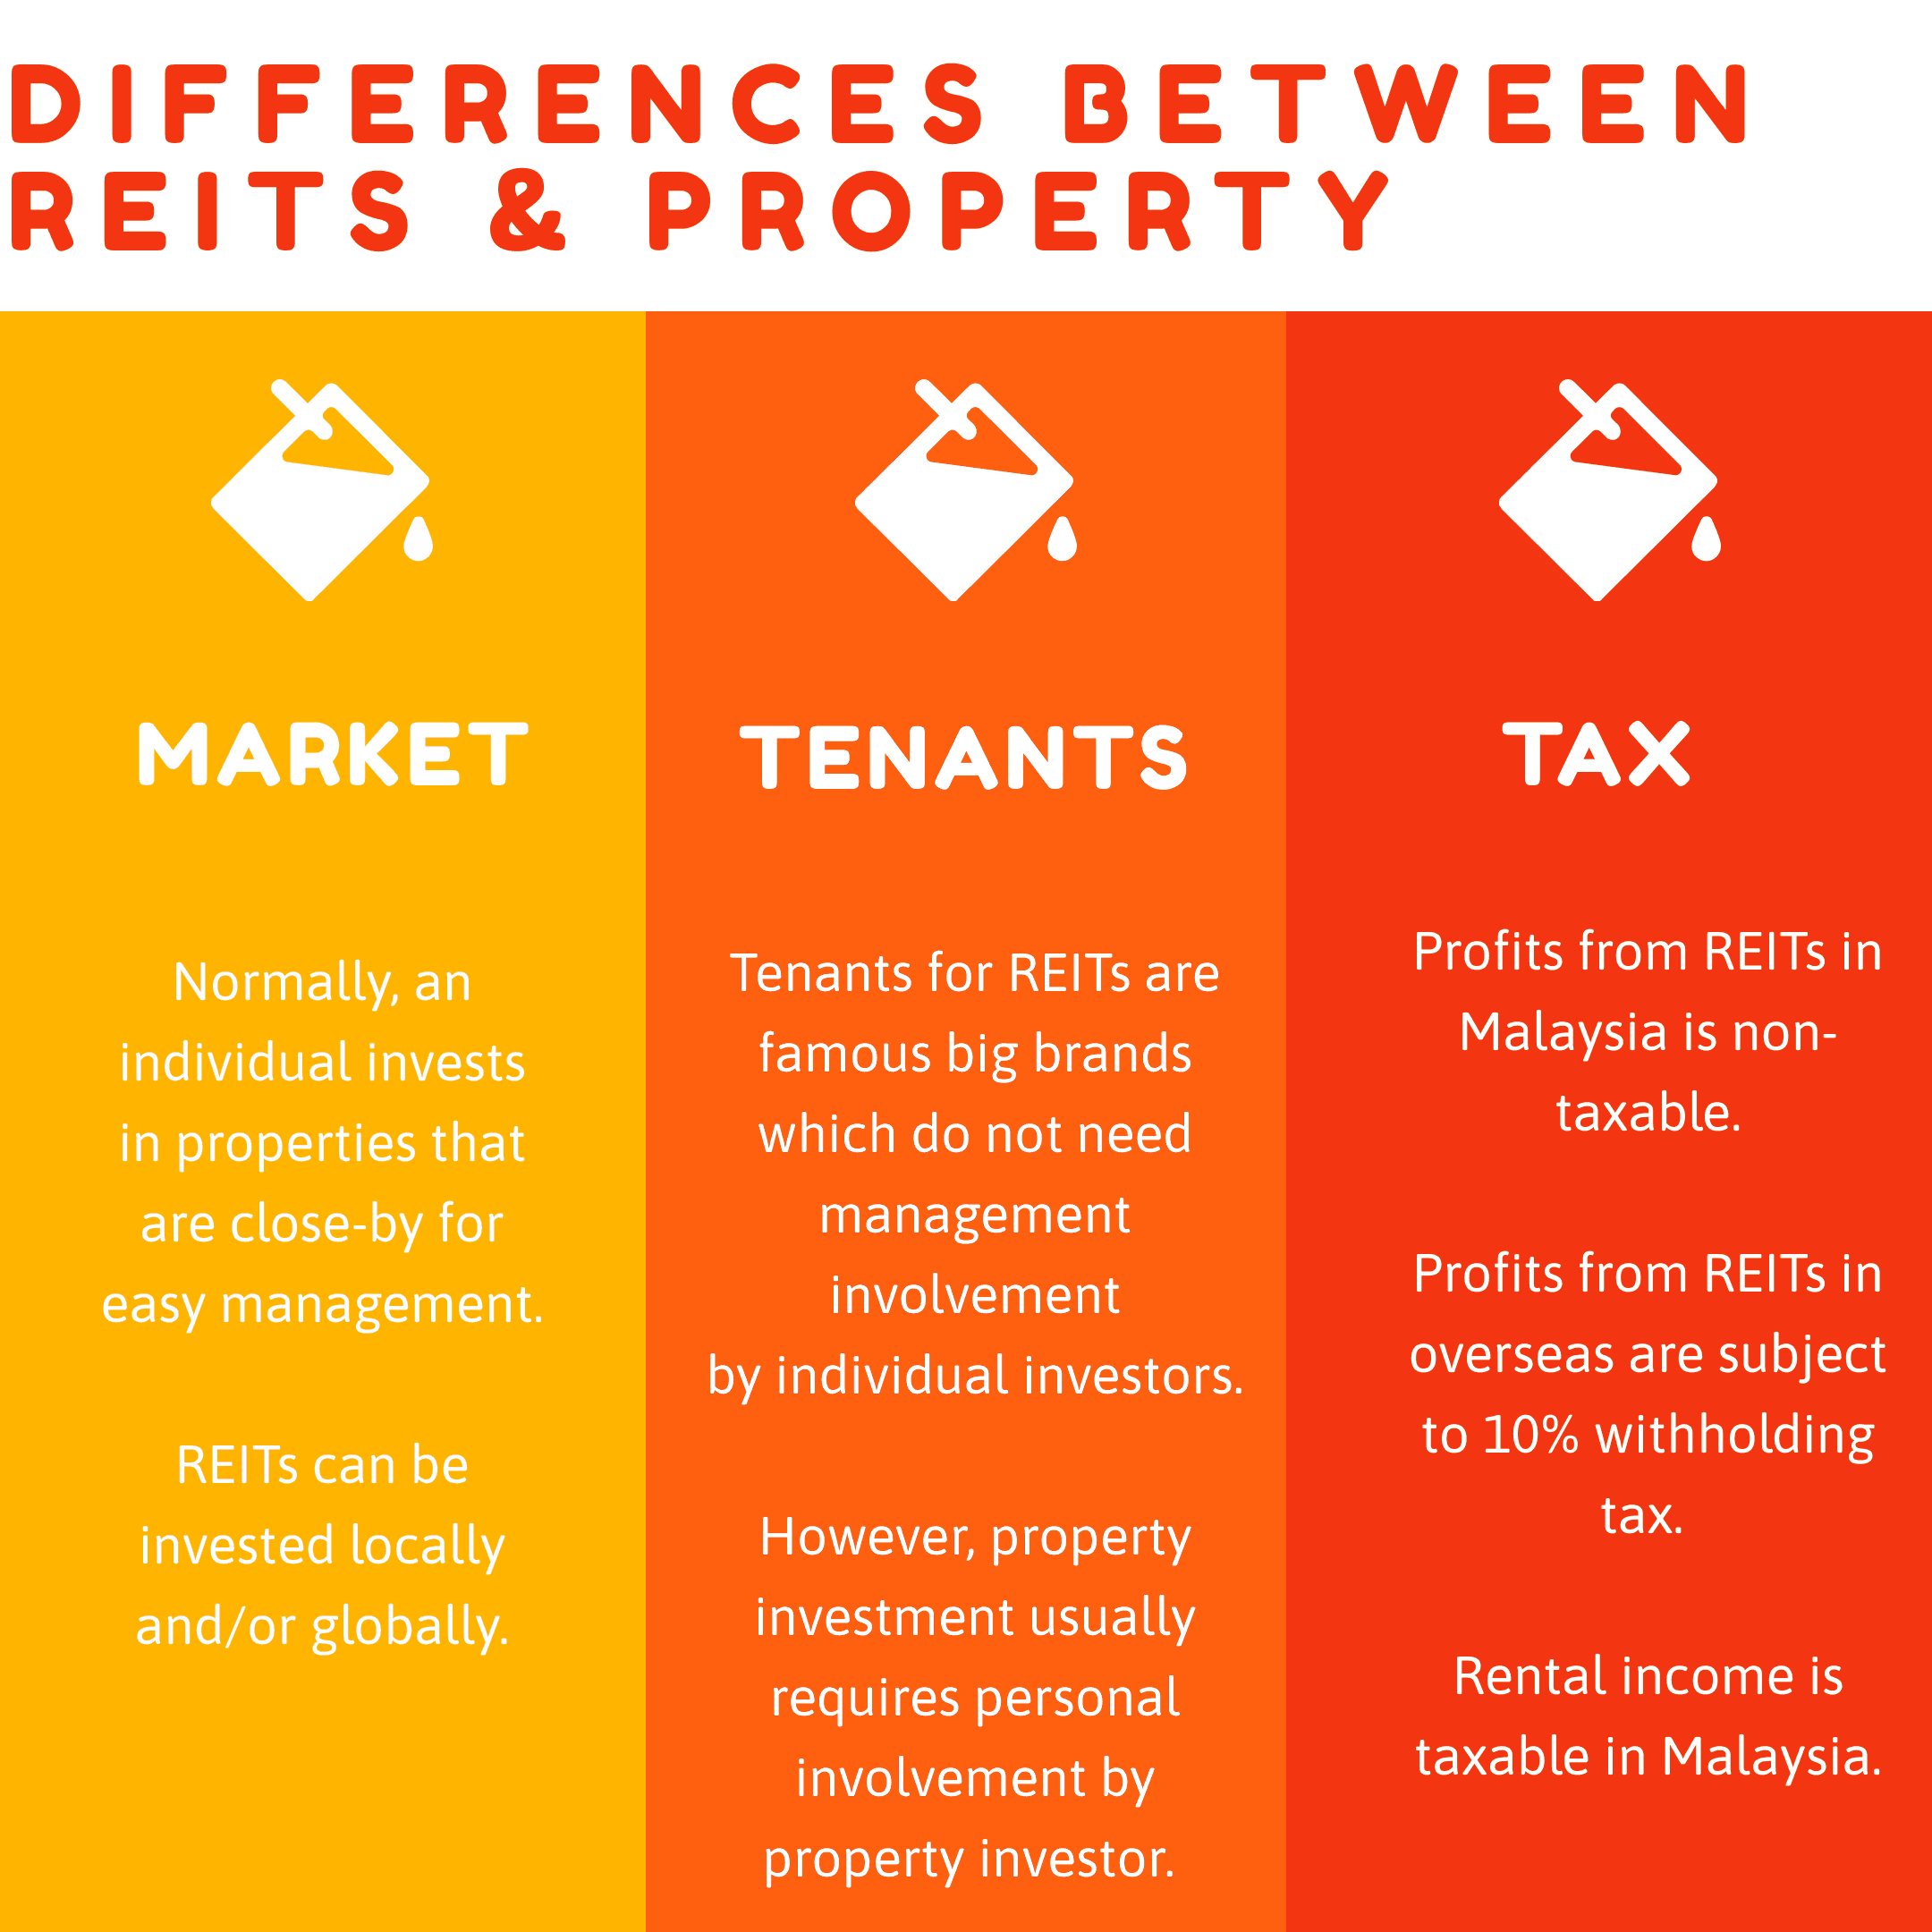 Key Differences: REITS VS PROPERTY